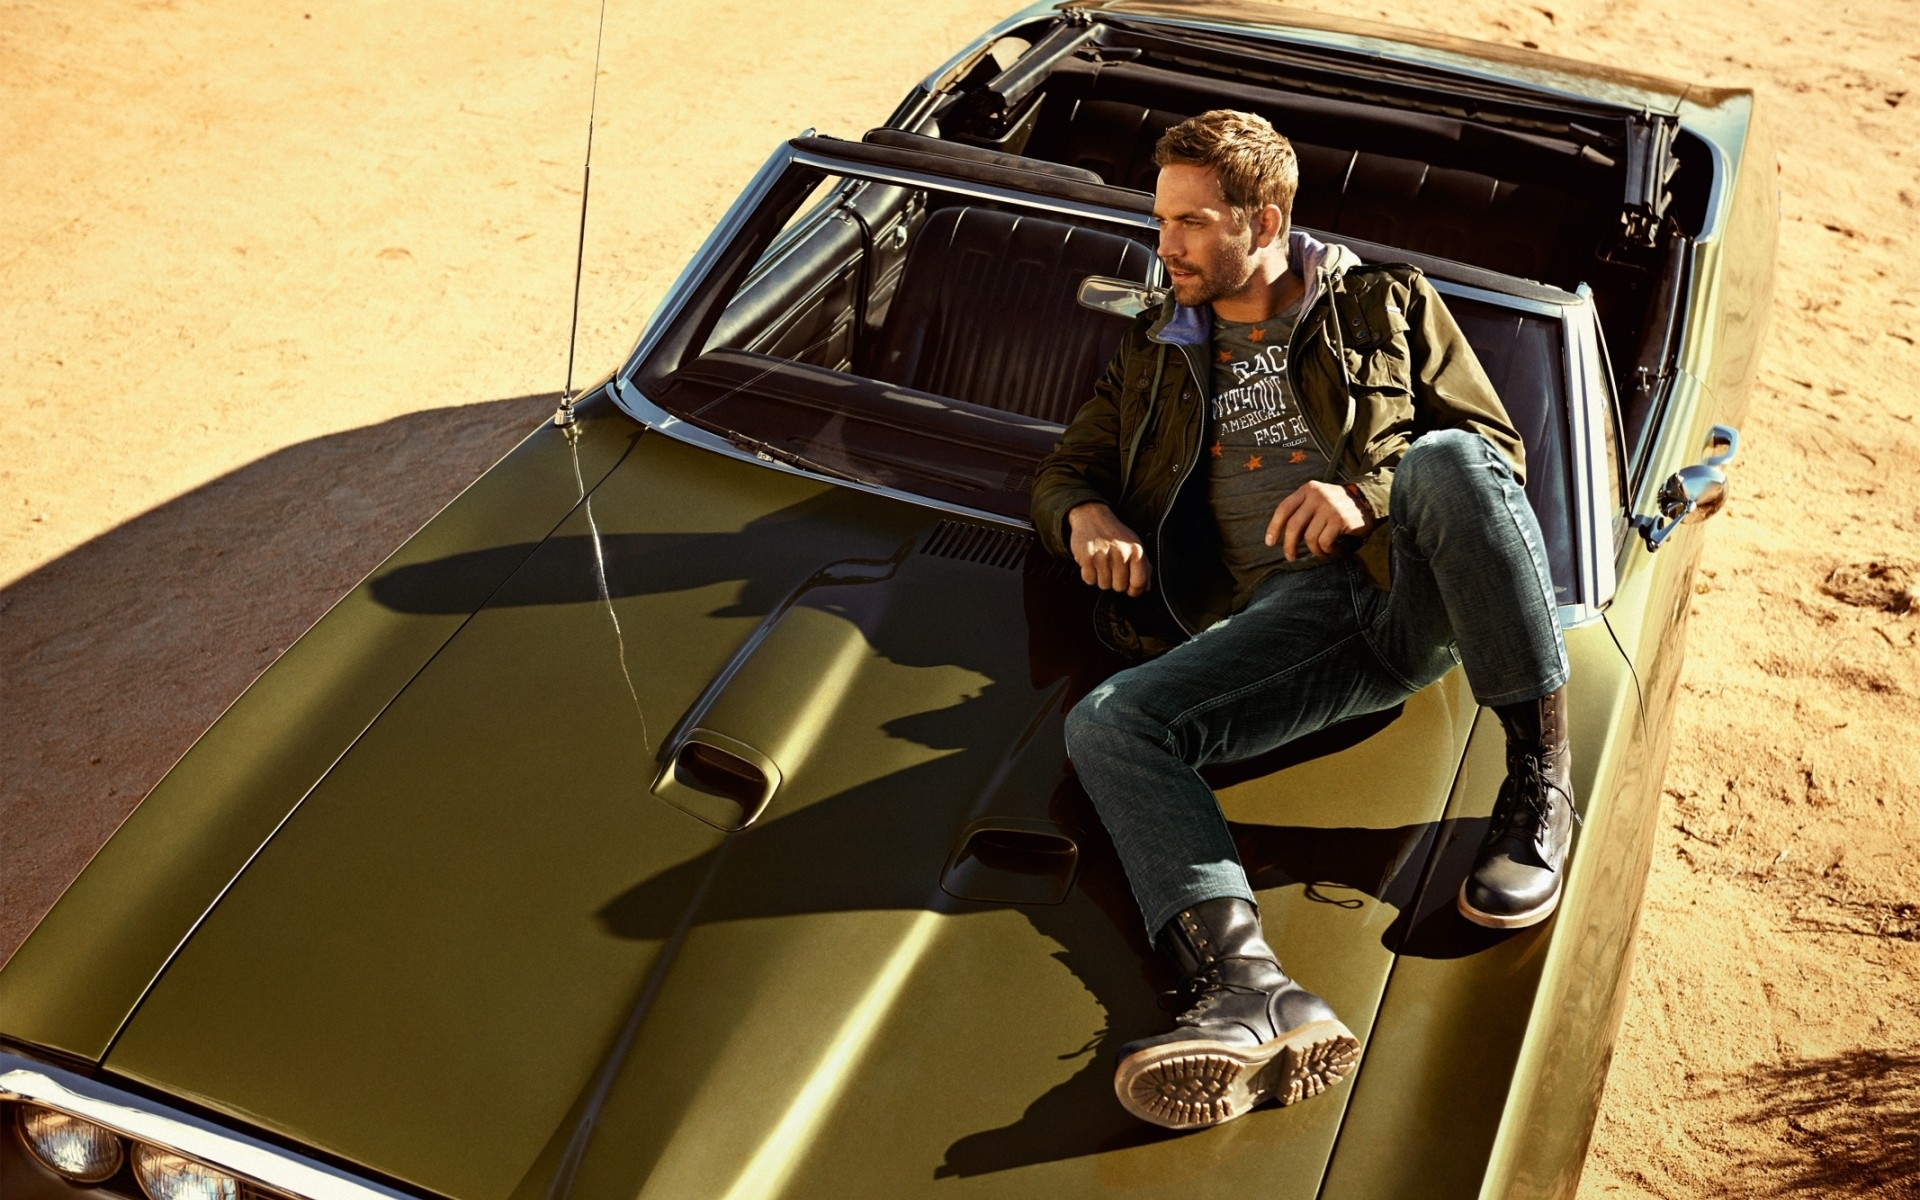 Paul walker hd celebrities 4k wallpapers images backgrounds photos and pictures - Paul walker images download ...